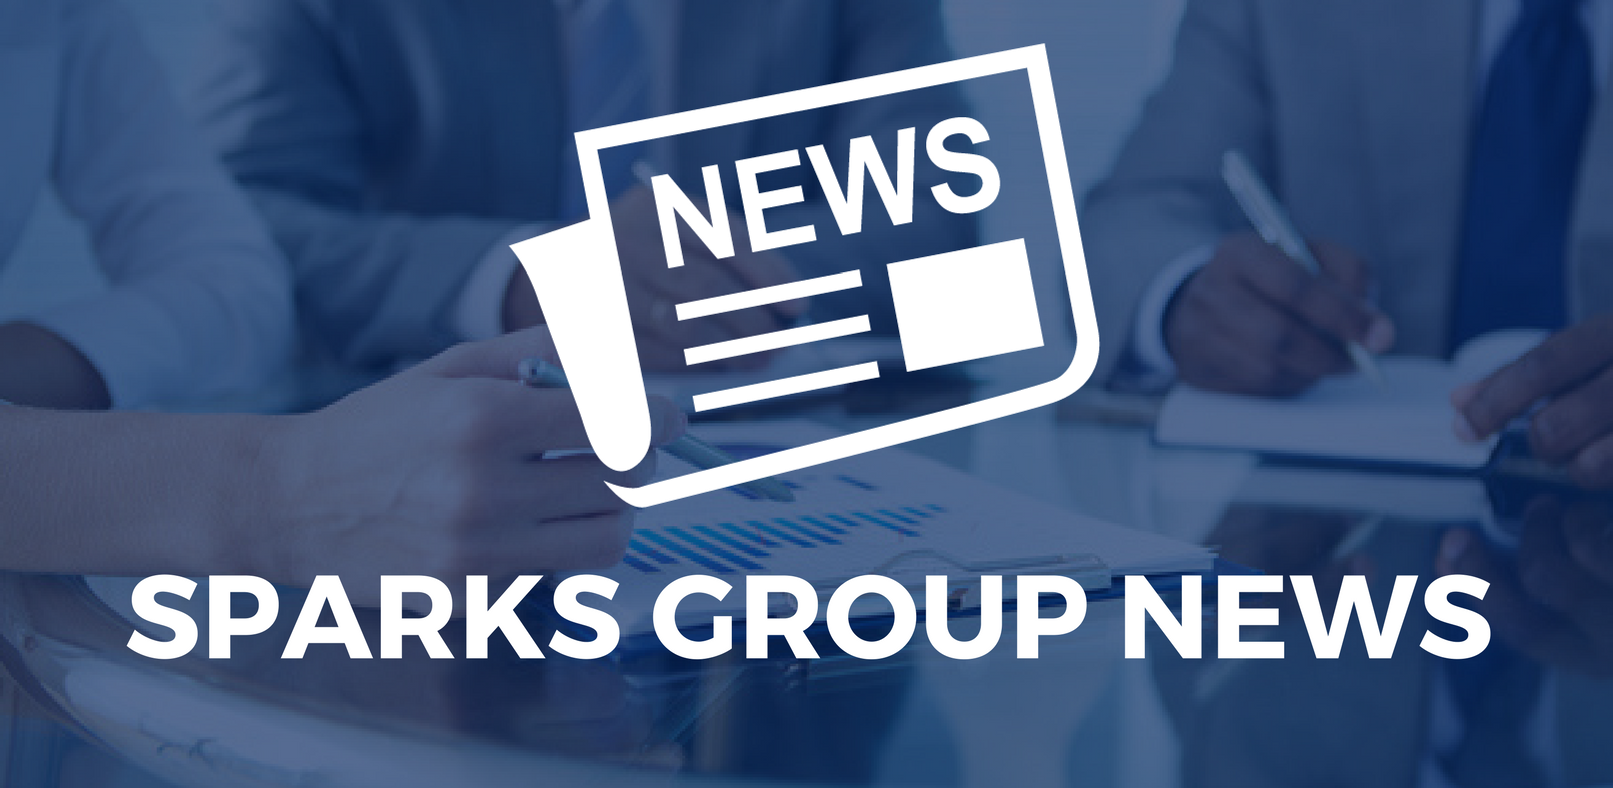 Sparks Group News